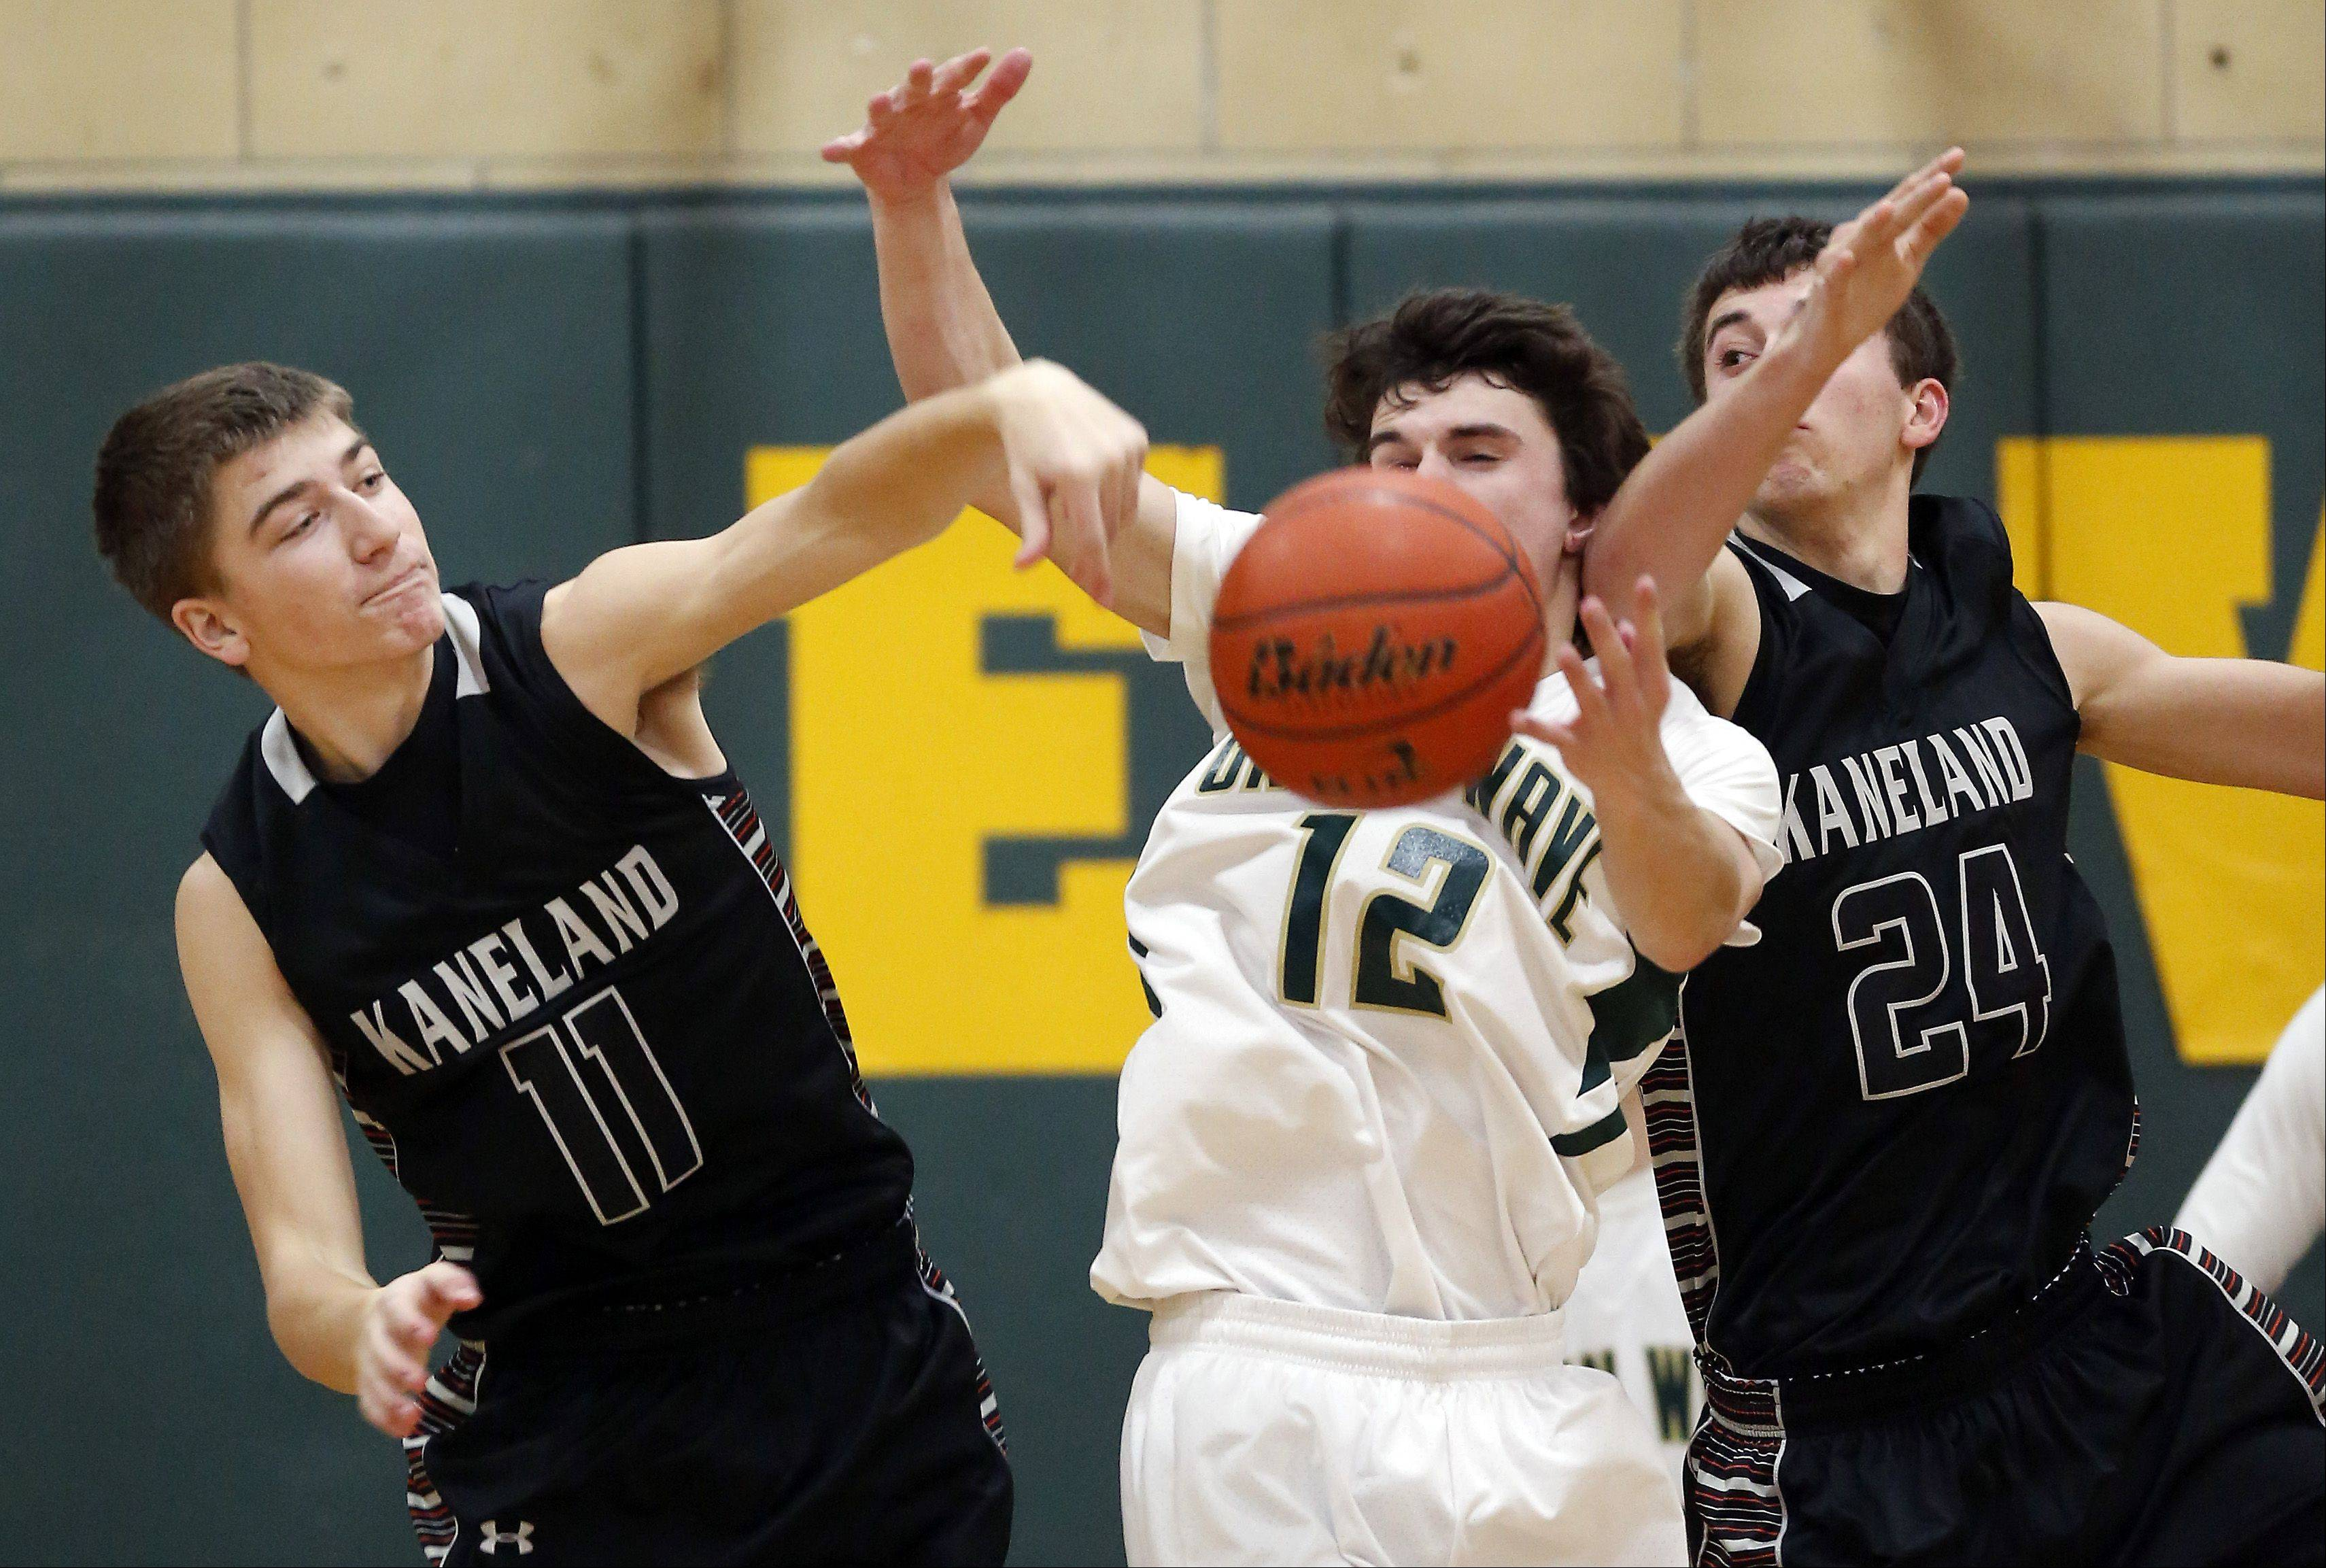 The Knights� Steven Limbrunner and Ryan David battle the Green Wave�s Joseph French.